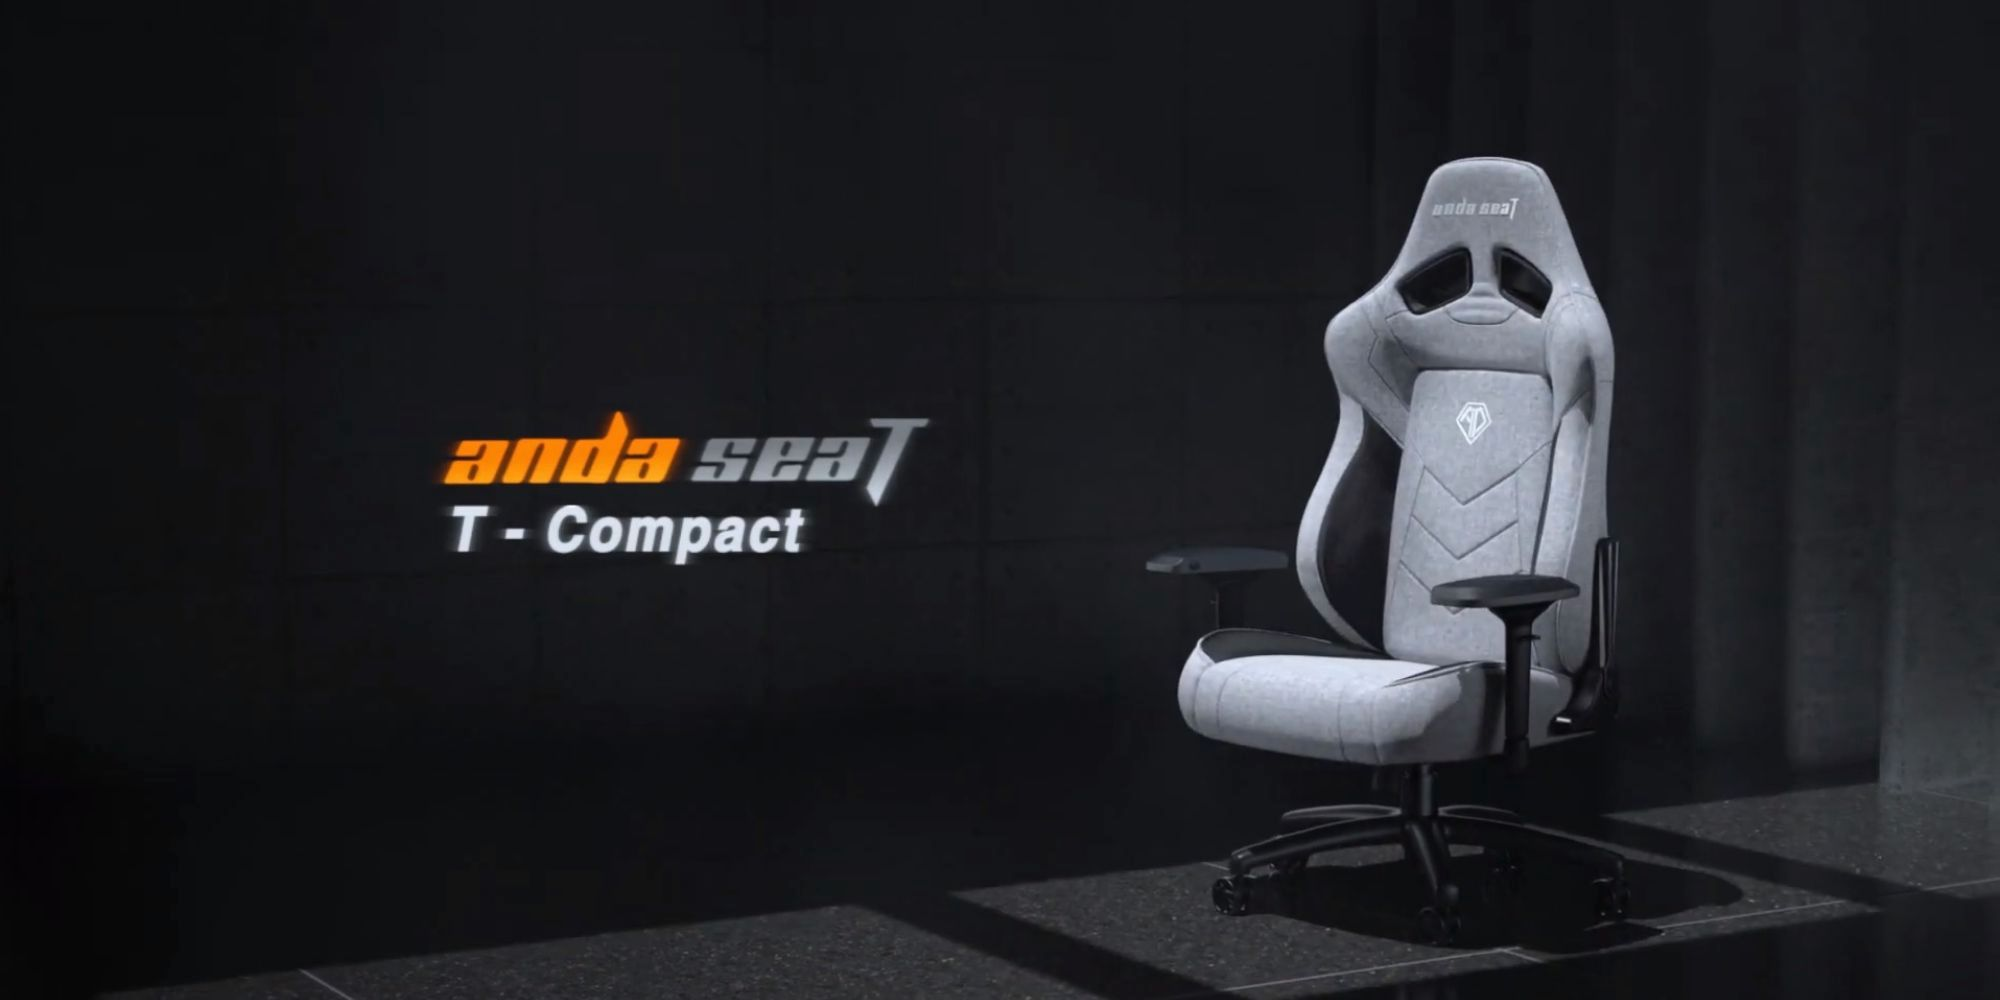 AndaSeat T-Compact Gaming Chair